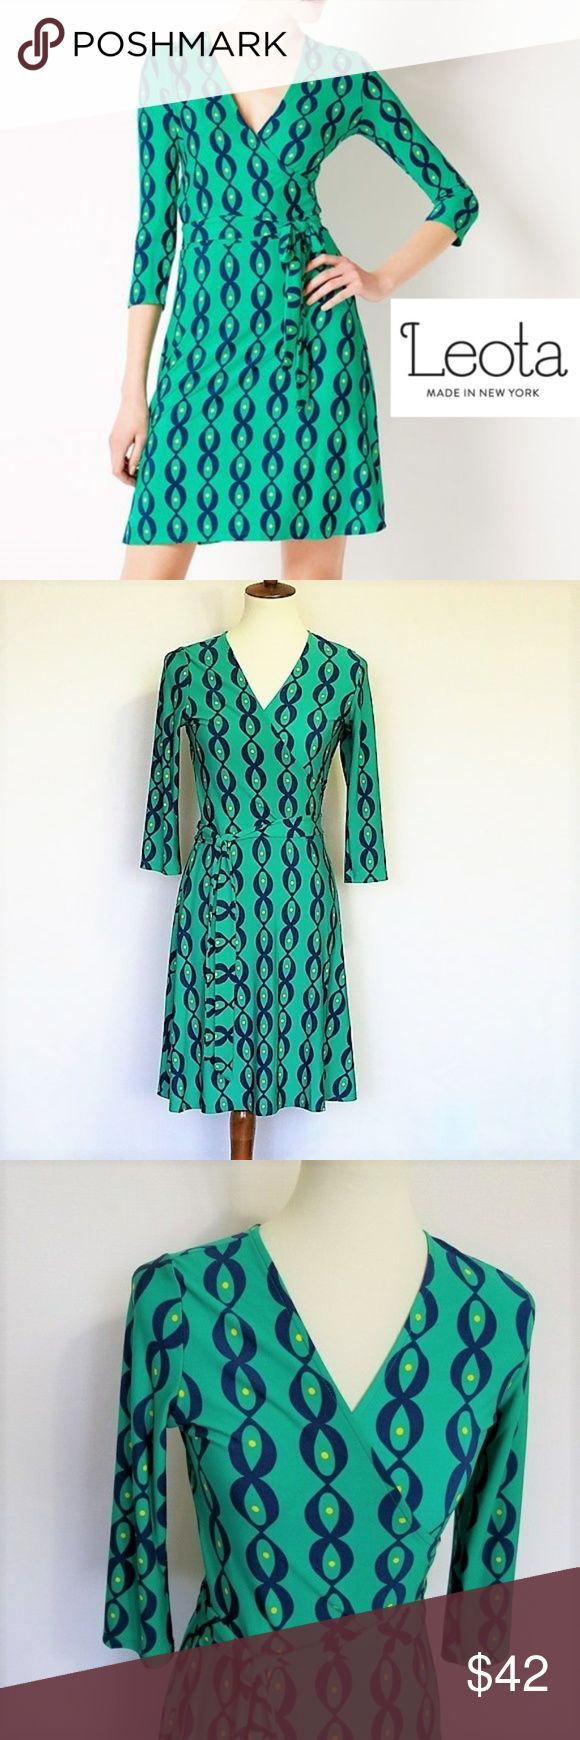 """Leota Faux Wrap Jersey Career Dress S NWT Leota Perfect Wrap Mini Dress size S NWT. Green with blue and yellow print. Faux wrap top A line skirt 3/4 sleeve Fabric tie 95% Polyester, 5% Spandex. Machine wash. No ironing needed Length from top to bottom: approx 36.5"""", Armpit to armpit approx 17.5"""" Waist: 14"""" laying flat Leota dresses are hand made in New York and are perfect for work or a night out D030 Leota Dresses"""